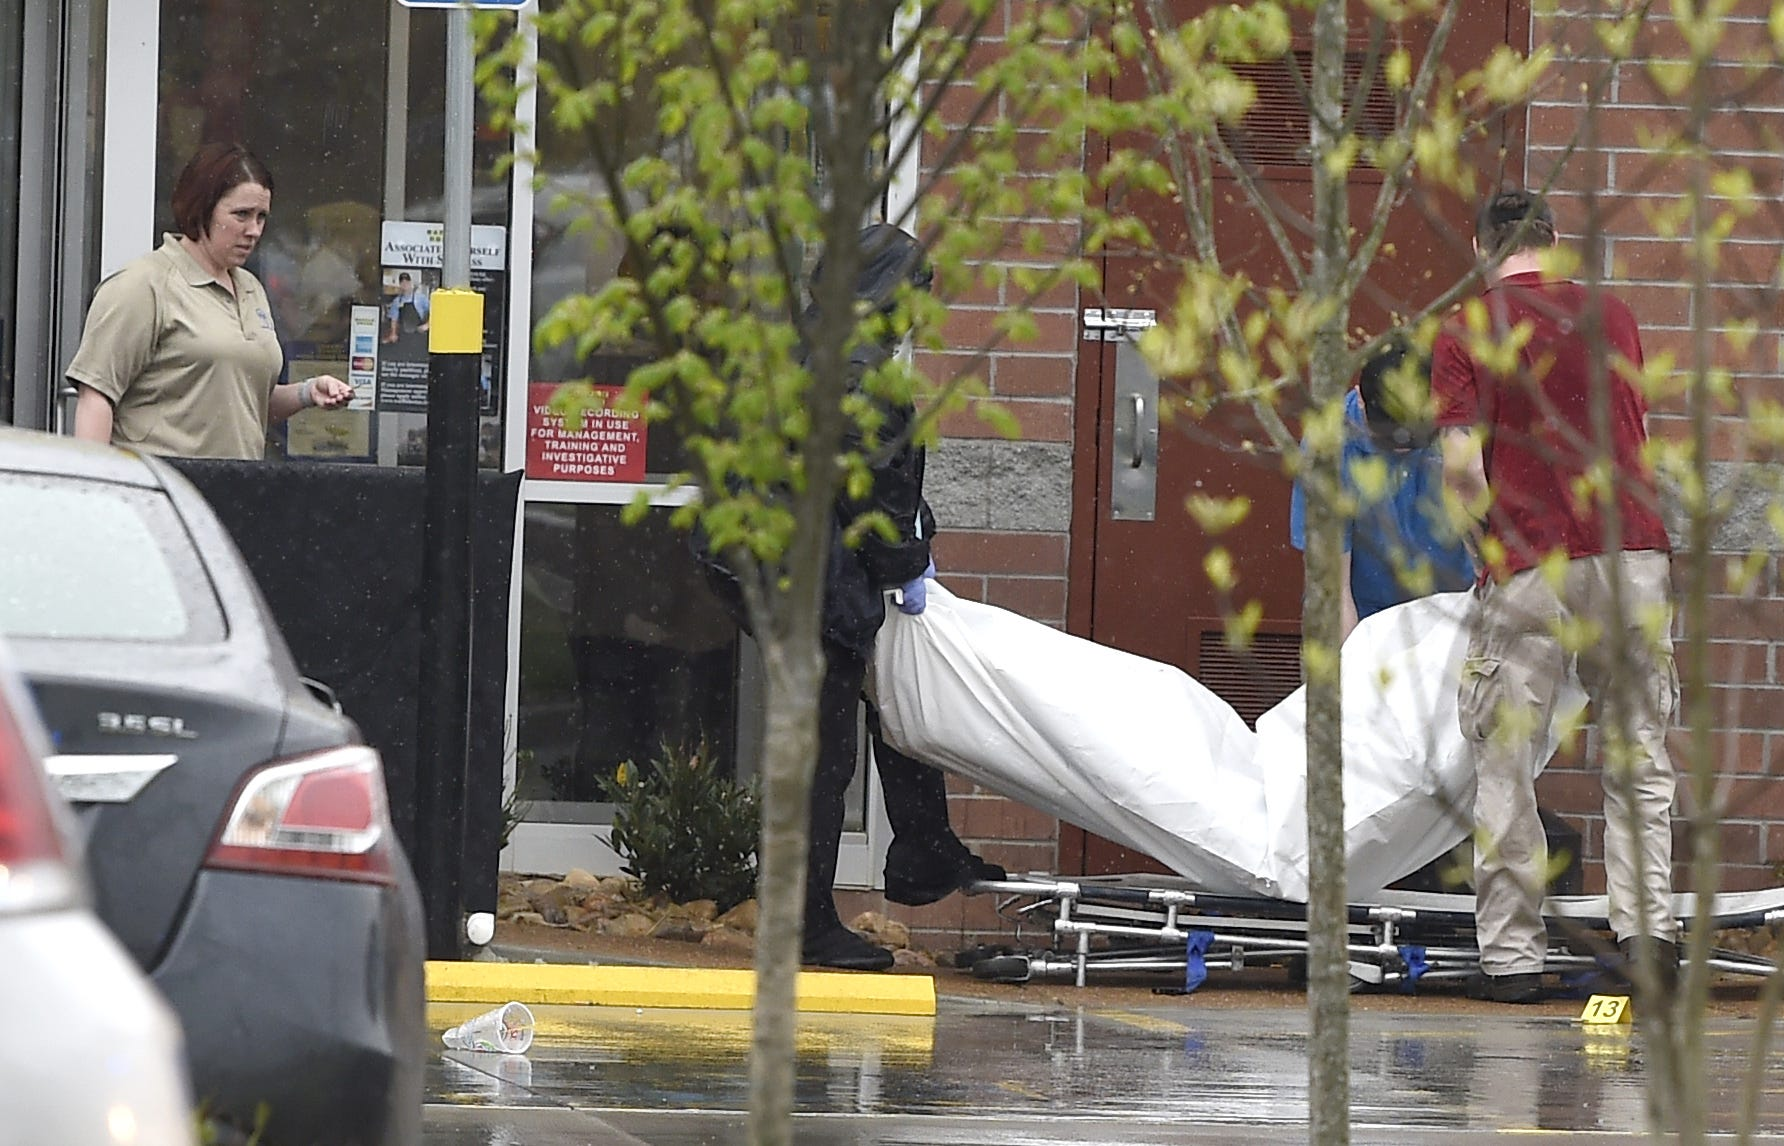 Coroners carry a body from the scene where four died after a gunman opened fire at a Waffle House in Antioch.